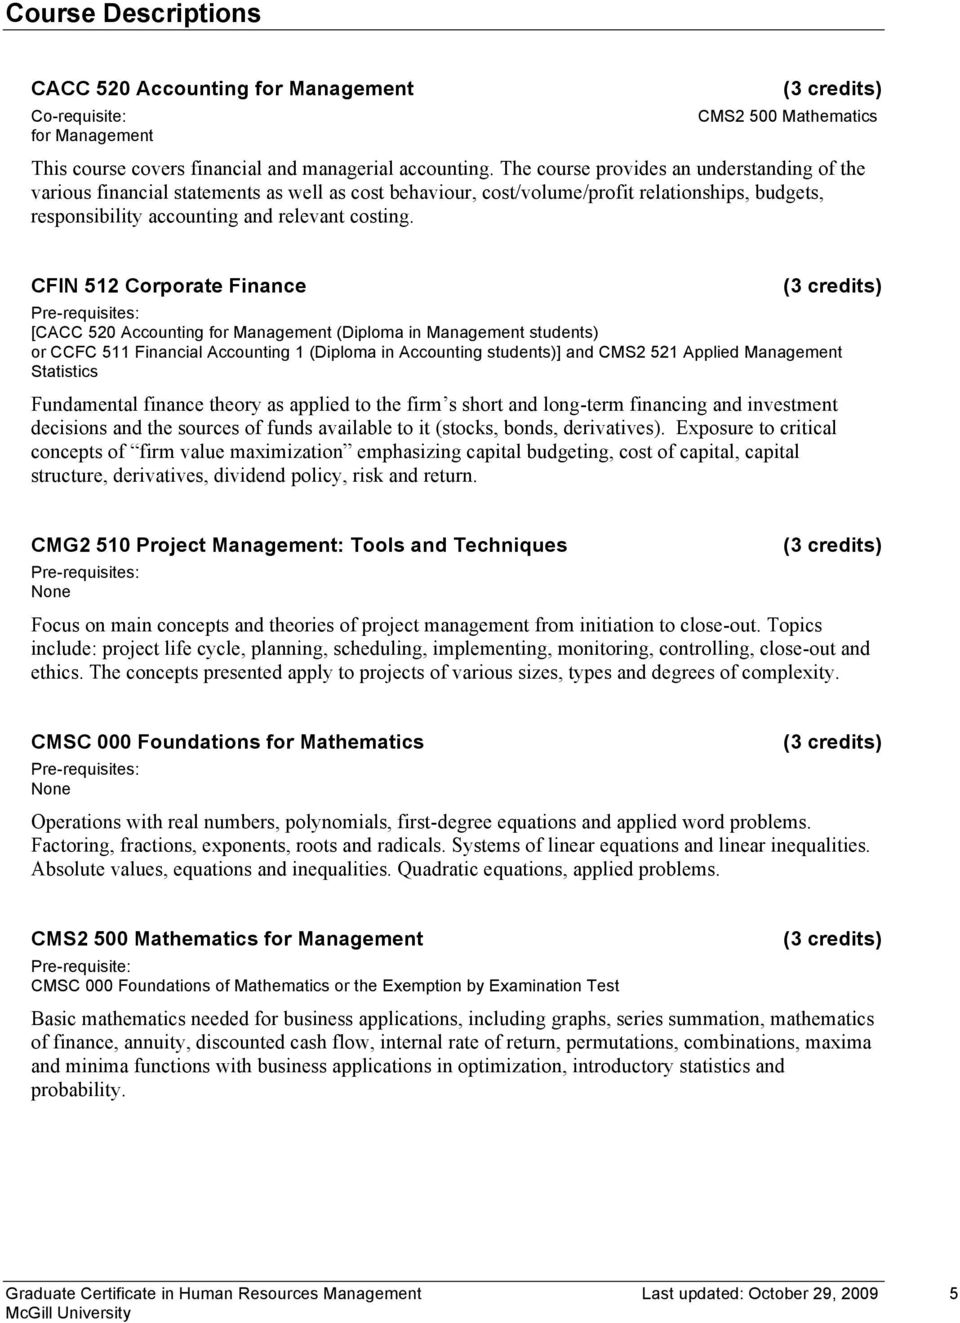 CFIN 512 Corporate Finance [CACC 520 Accounting for Management (Diploma in Management students) or CCFC 511 Financial Accounting 1 (Diploma in Accounting students)] and CMS2 521 Applied Management